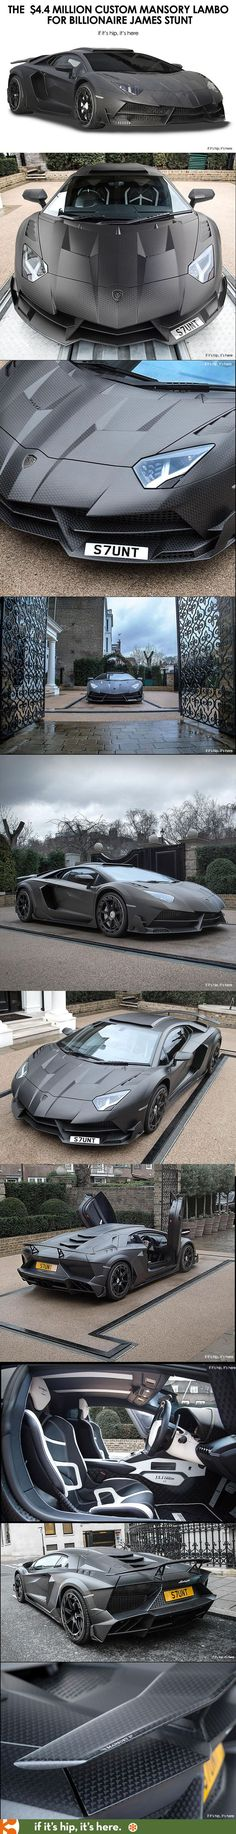 Awesome Lamborghini 2017: The killer Custom Carbon fibre clad Lamborghini by Mansory for billionaire James... Car24 - World Bayers Check more at http://car24.top/2017/2017/01/26/lamborghini-2017-the-killer-custom-carbon-fibre-clad-lamborghini-by-mansory-for-billionaire-james-car24-world-bayers/